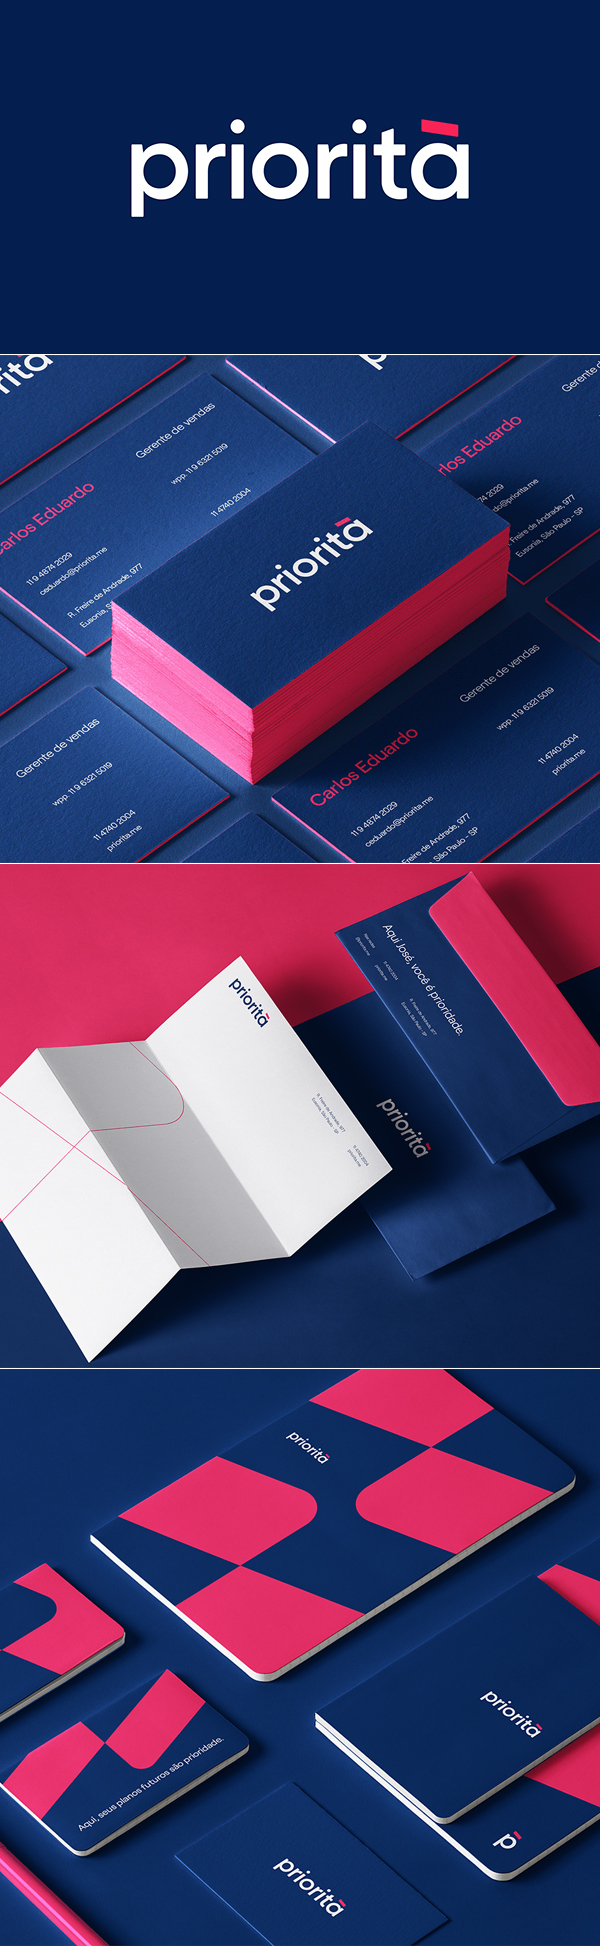 Business Card - Priorita Joao Branding Identity by Marcos